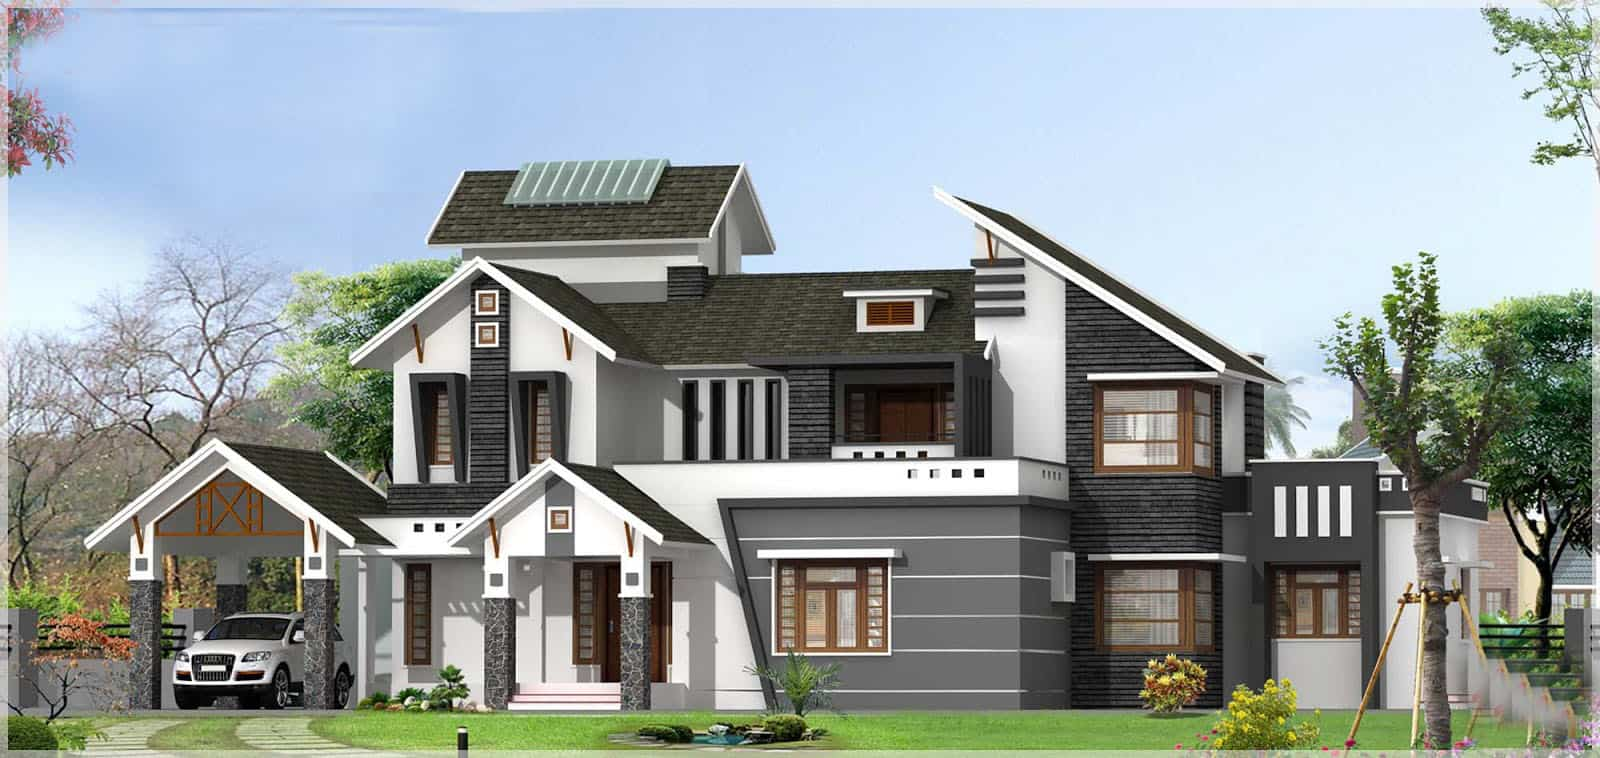 Sloping roof kerala house design at 3136 with pergolas for Home designs for kerala